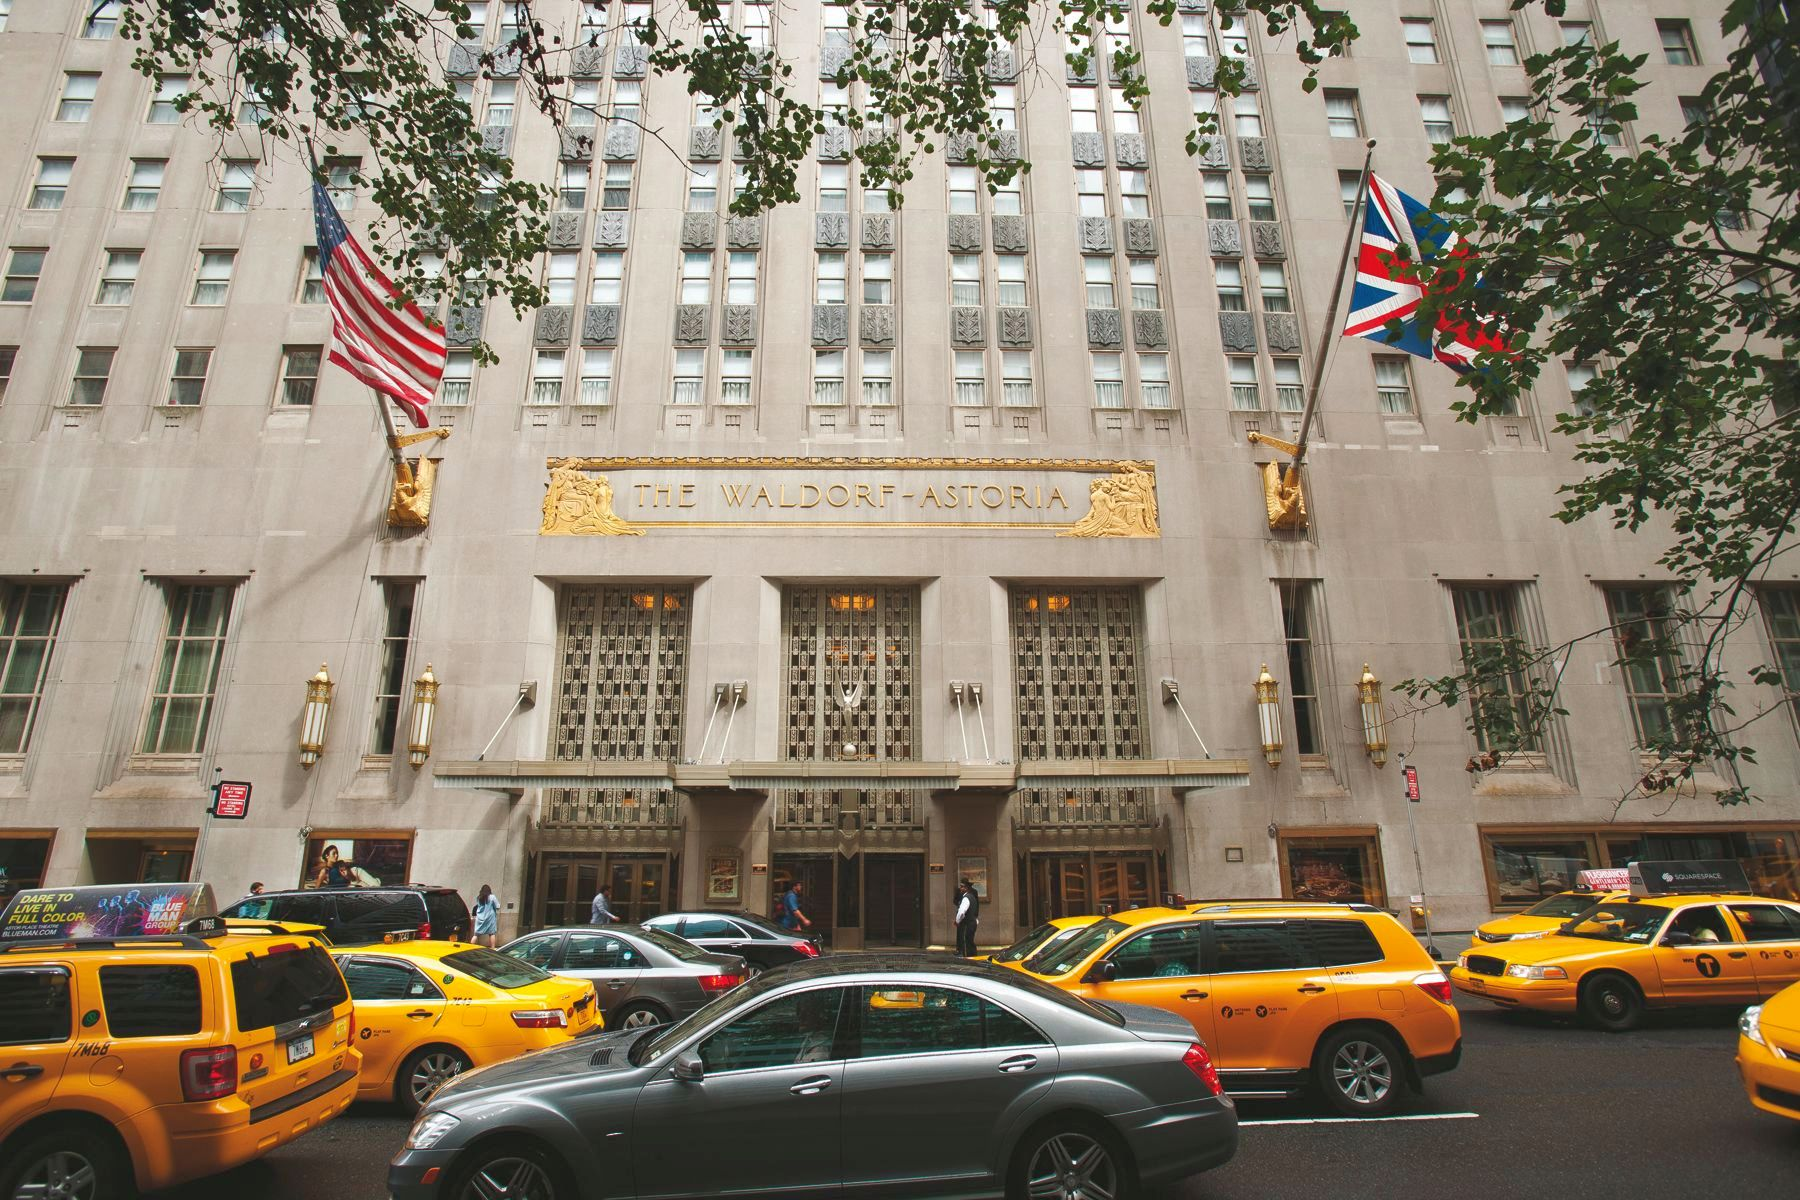 No Need To Check In At Waldorf Astoria You Could Just